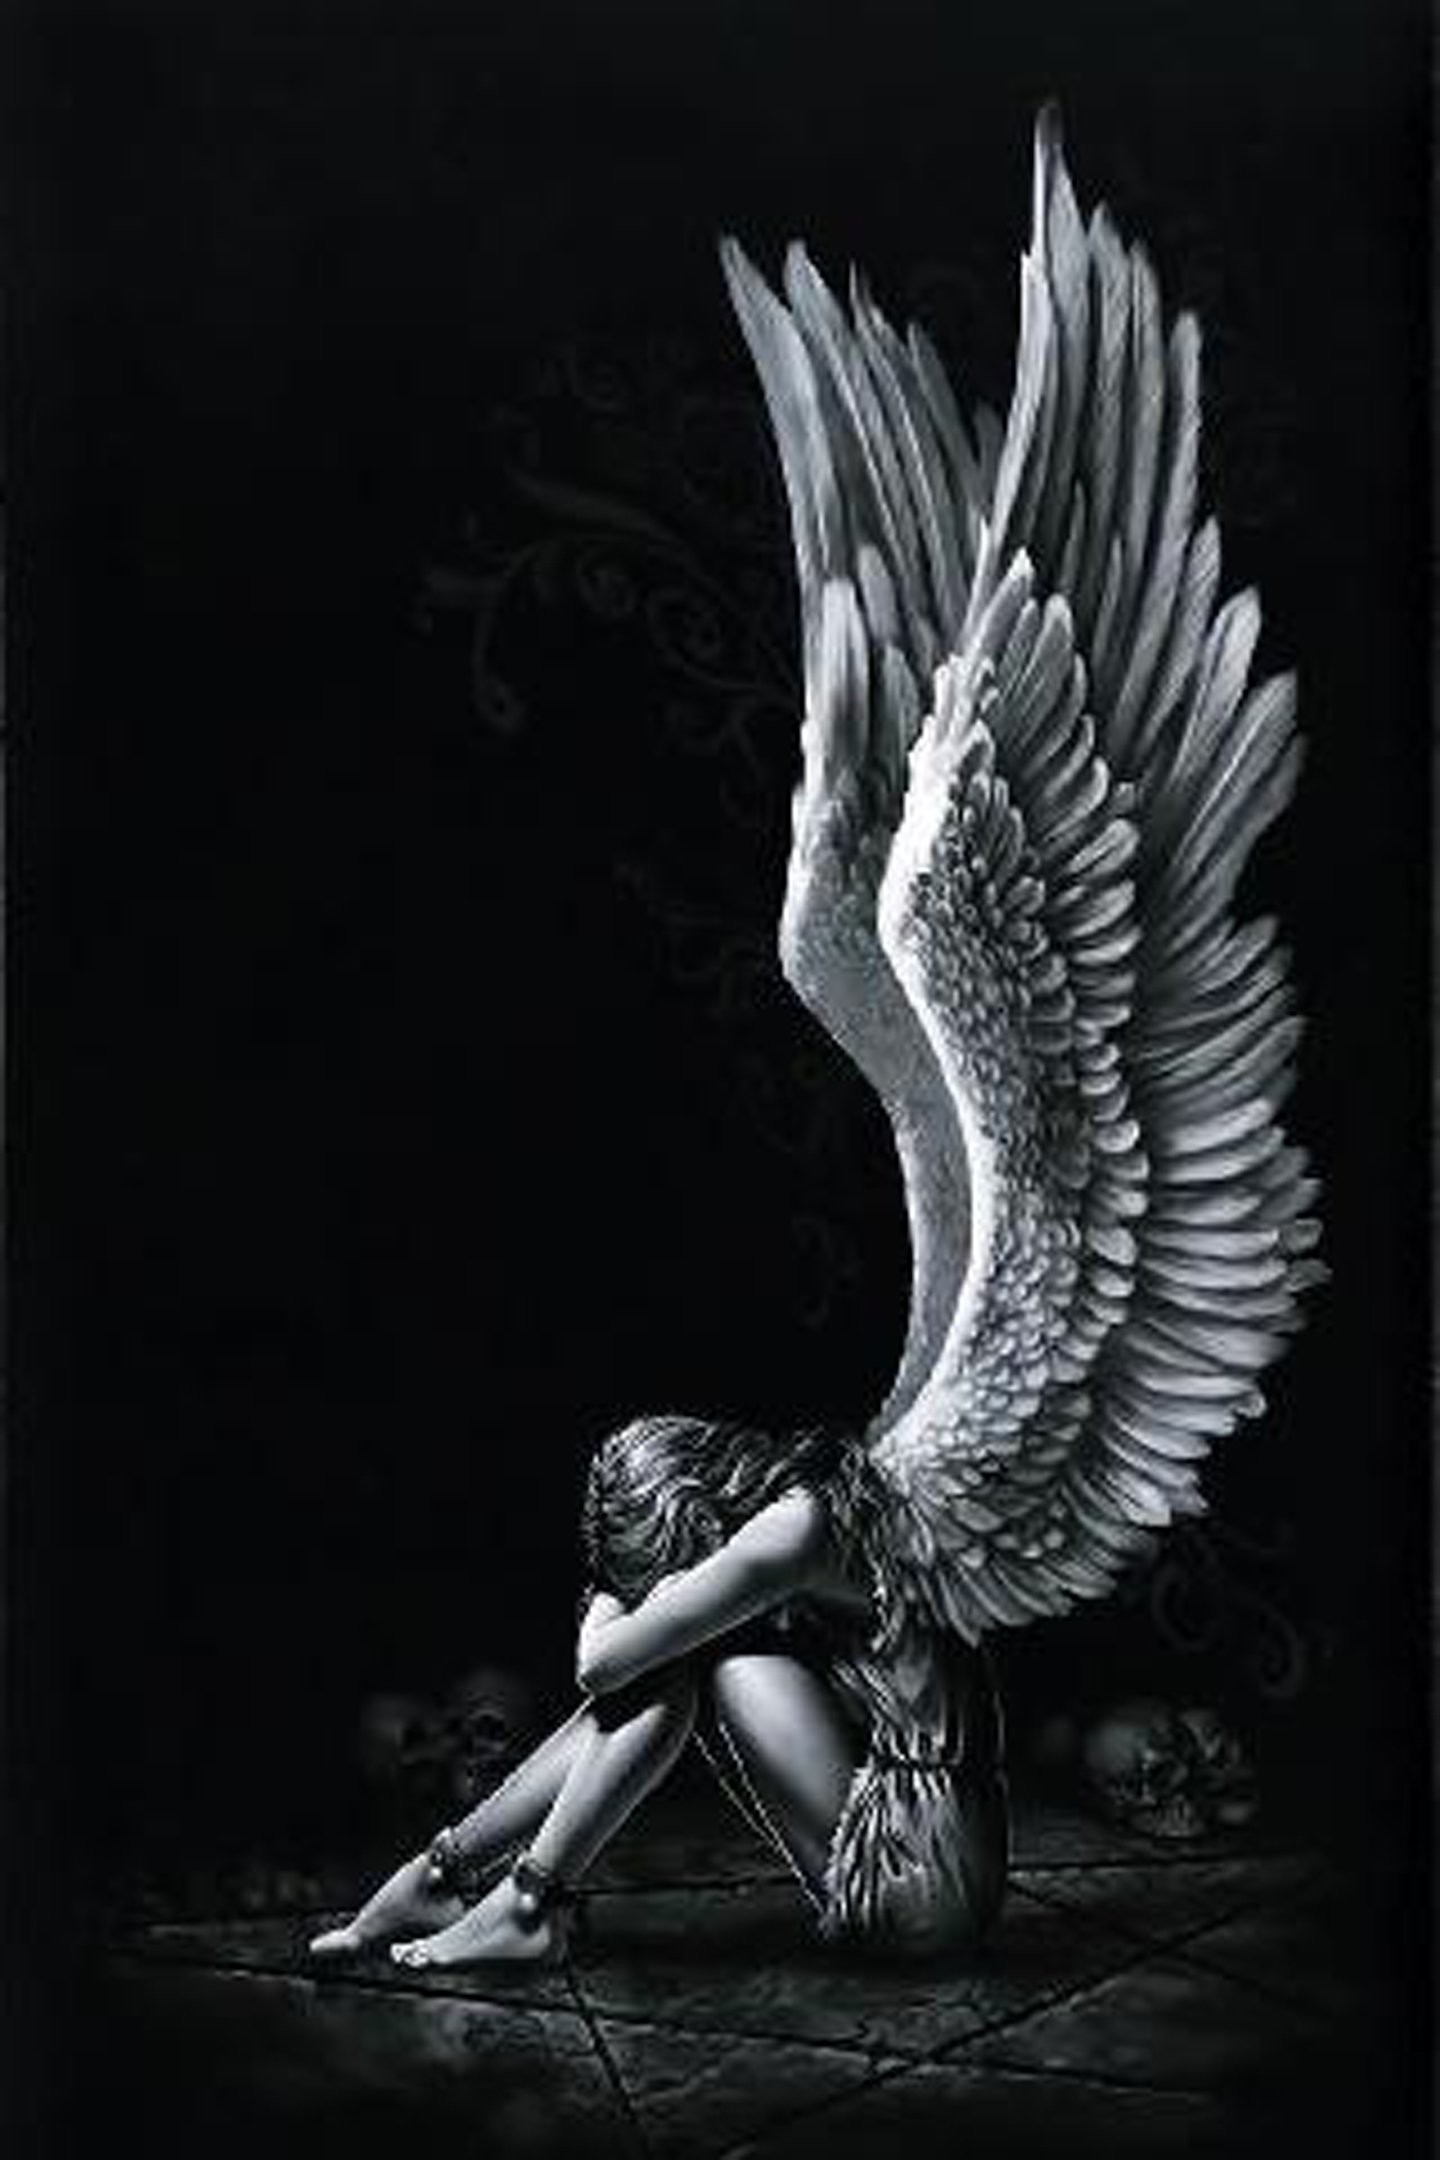 1440x2160 Angel girl wings fantasy alone light black white wallpaper |  |  571221 | WallpaperUP